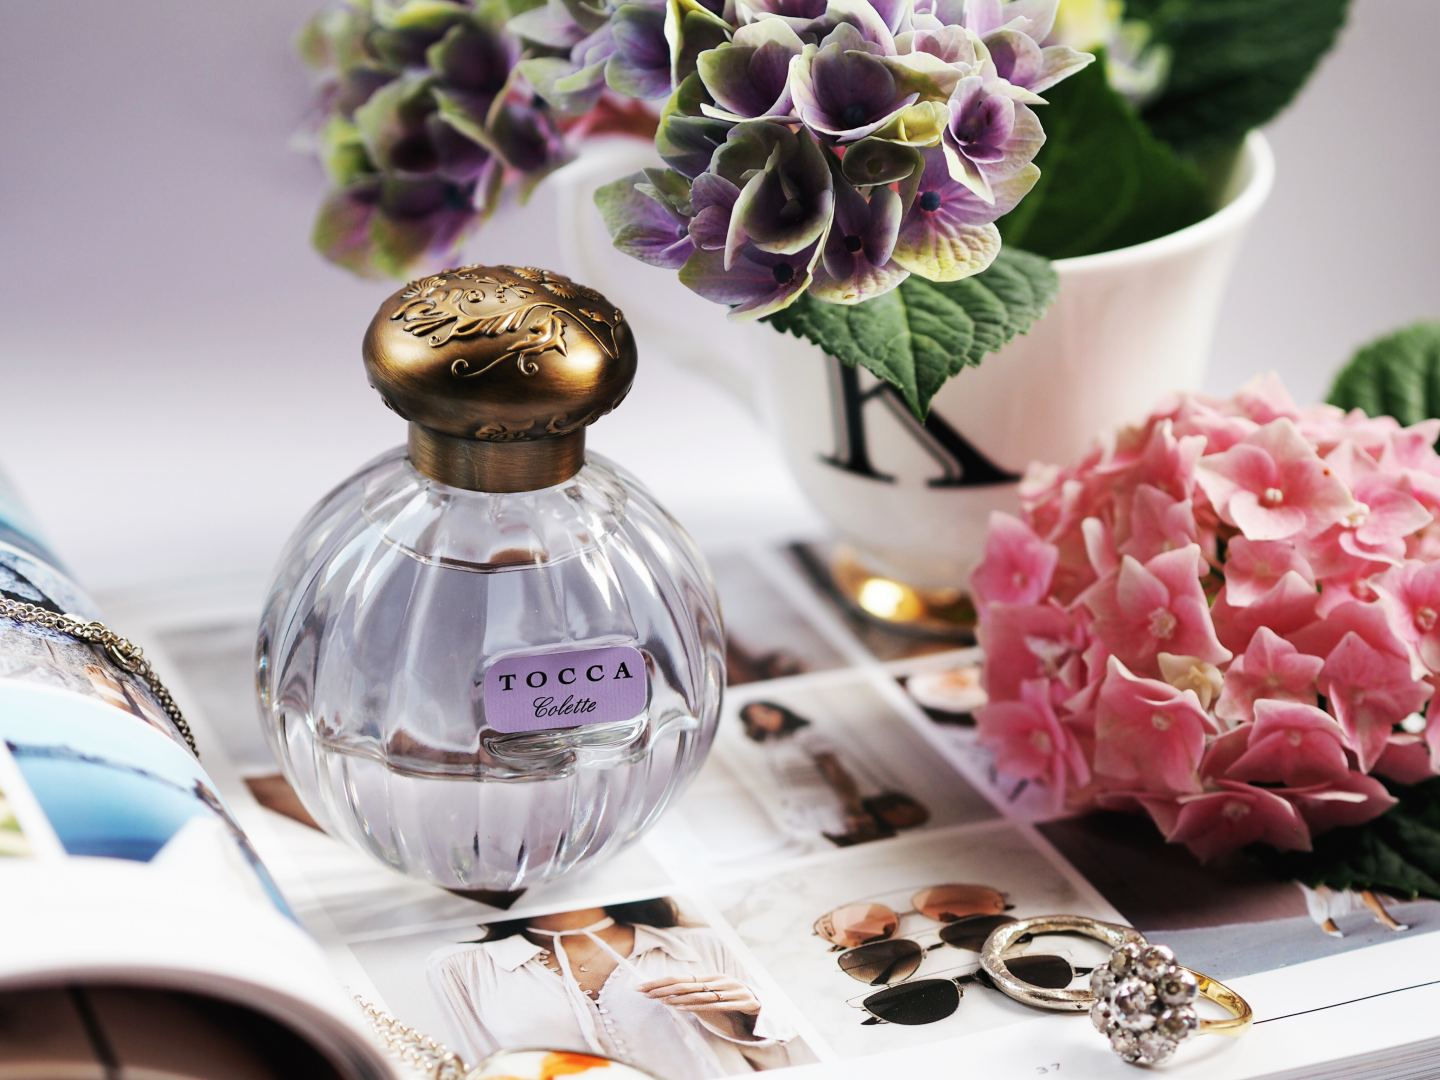 Tocca 'Colette' Perfume Review